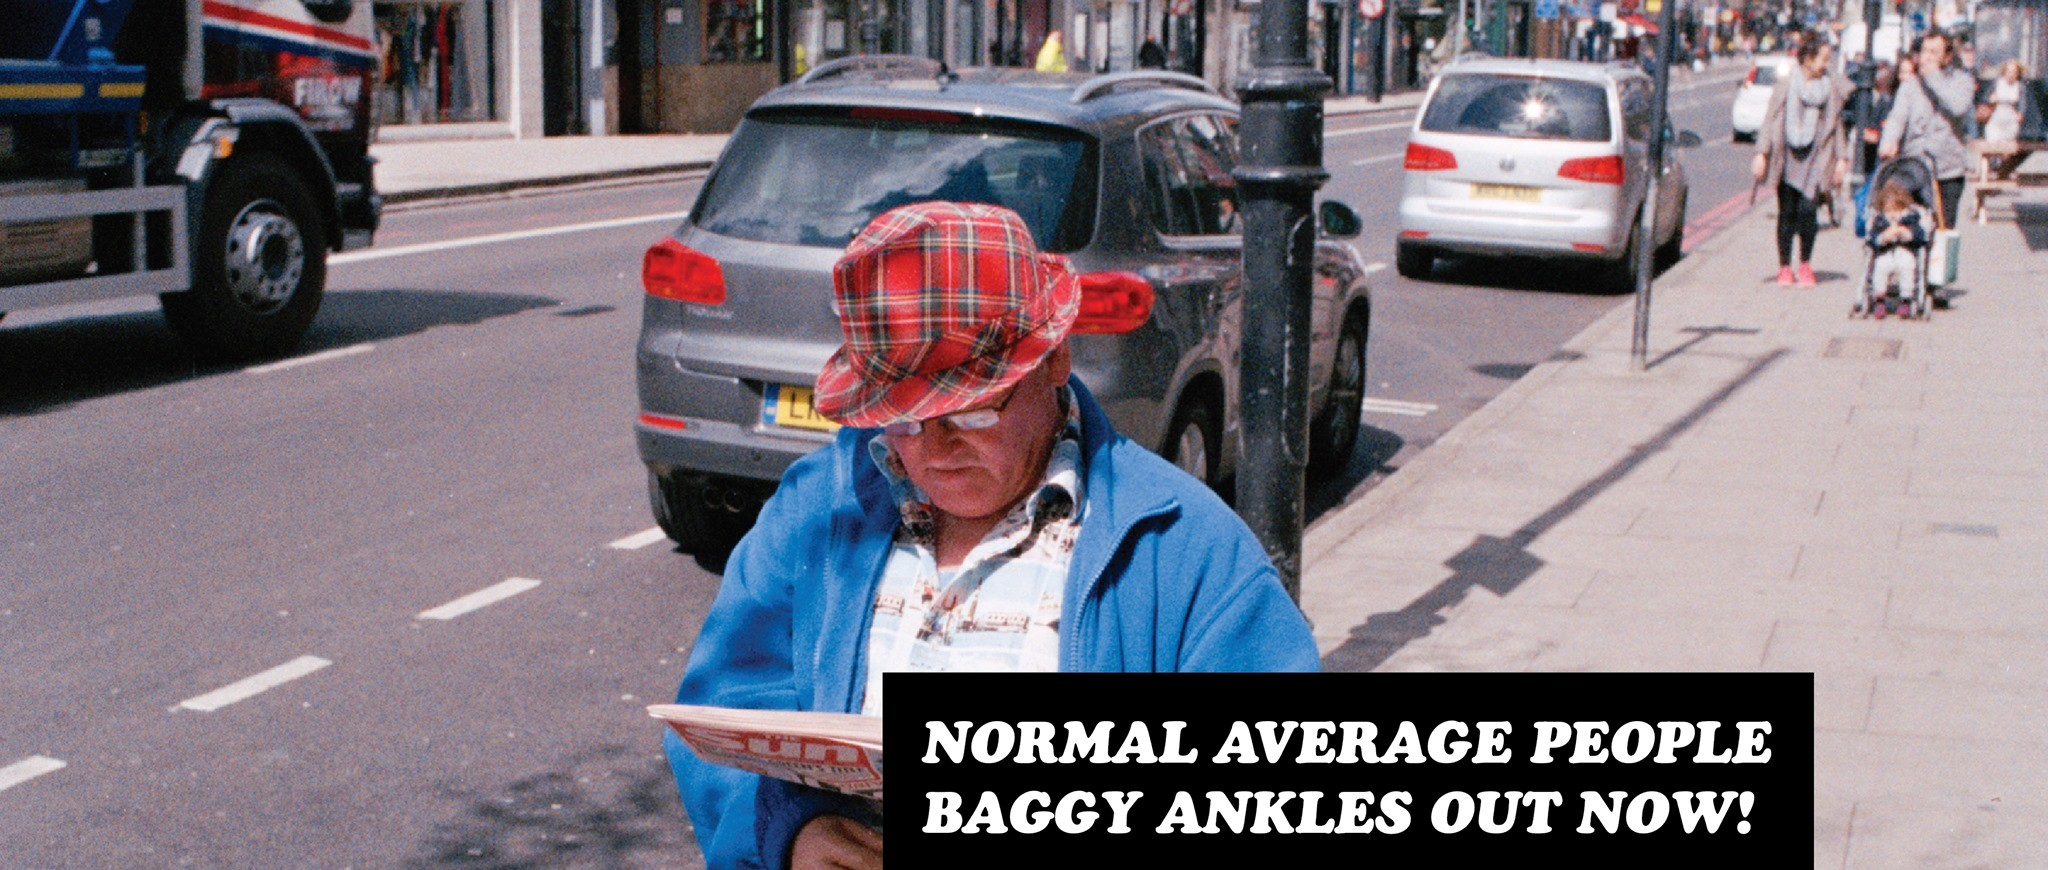 Normal Average People - Baggy Ankles - Ex Gillbanks